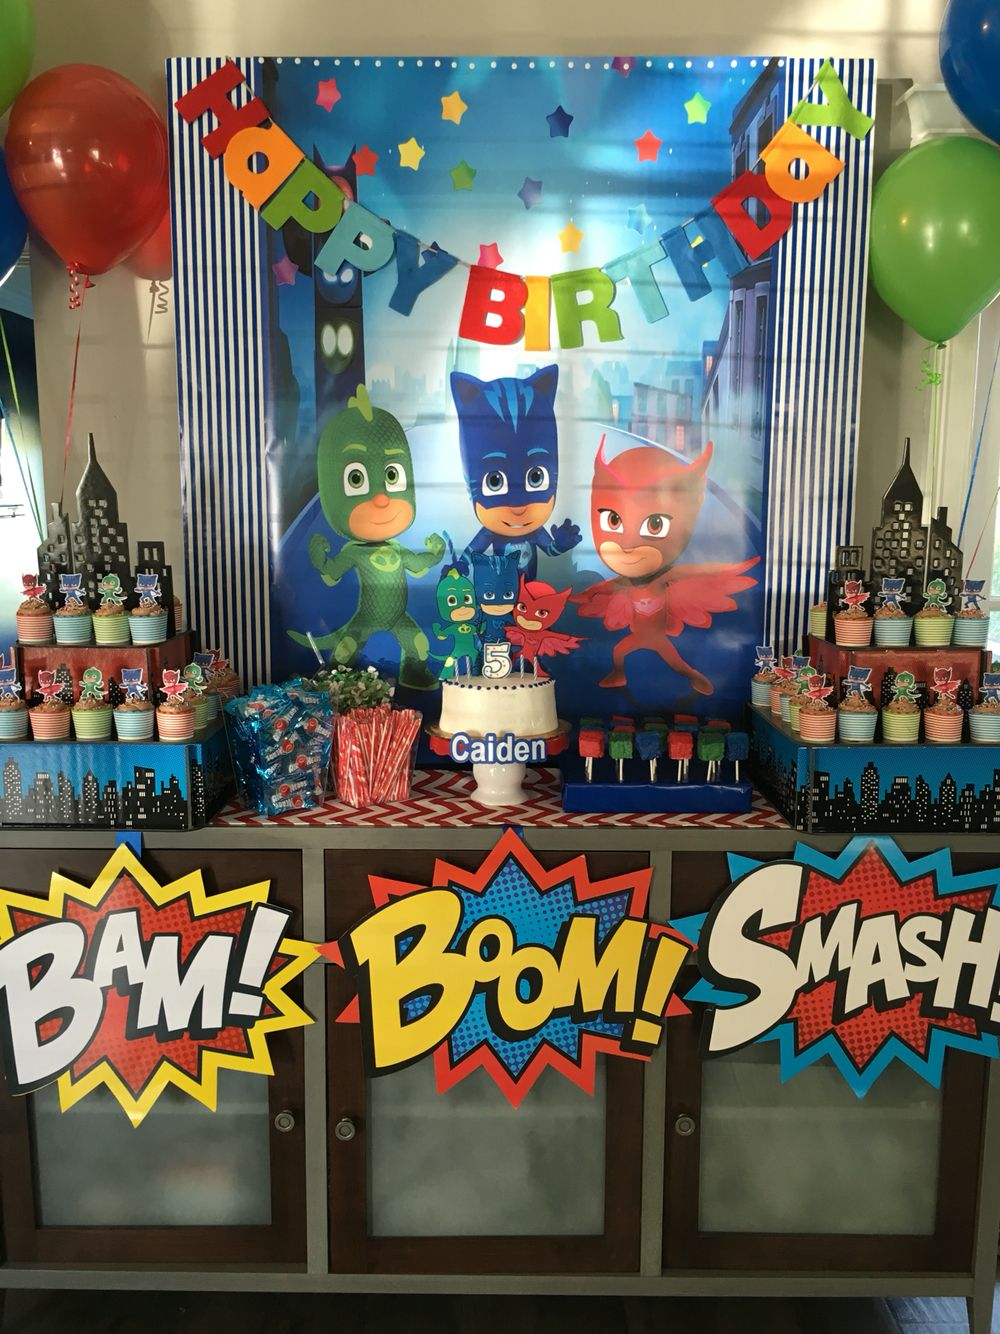 Pj Mask Party Decorations Festa A Tema Pj Masks_Buffet  Ideas  Pinterest  Pj Mask Mask